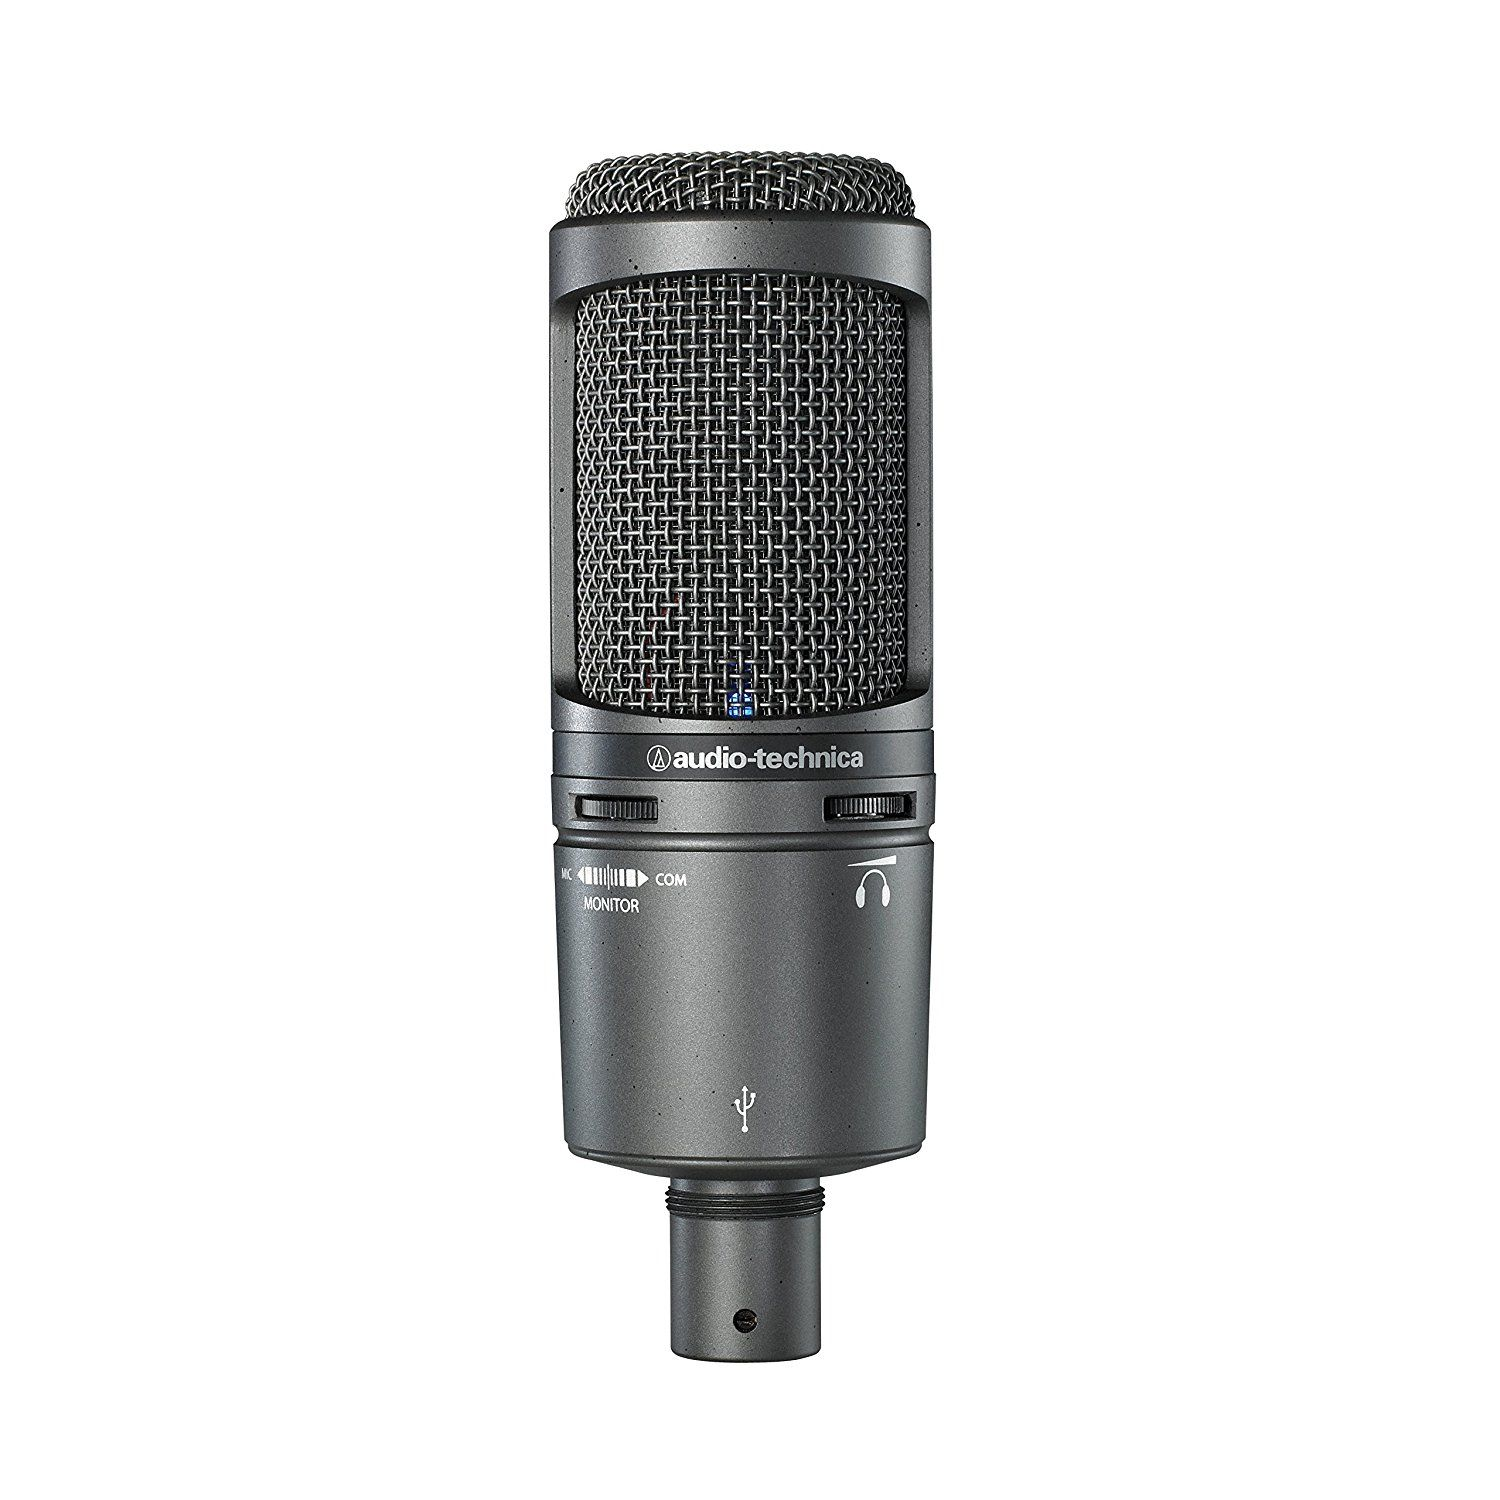 Top 5 Best Microphone For Youtube Gaming Commentary Buying Guide Usb Microphone Microphone Audio Technica